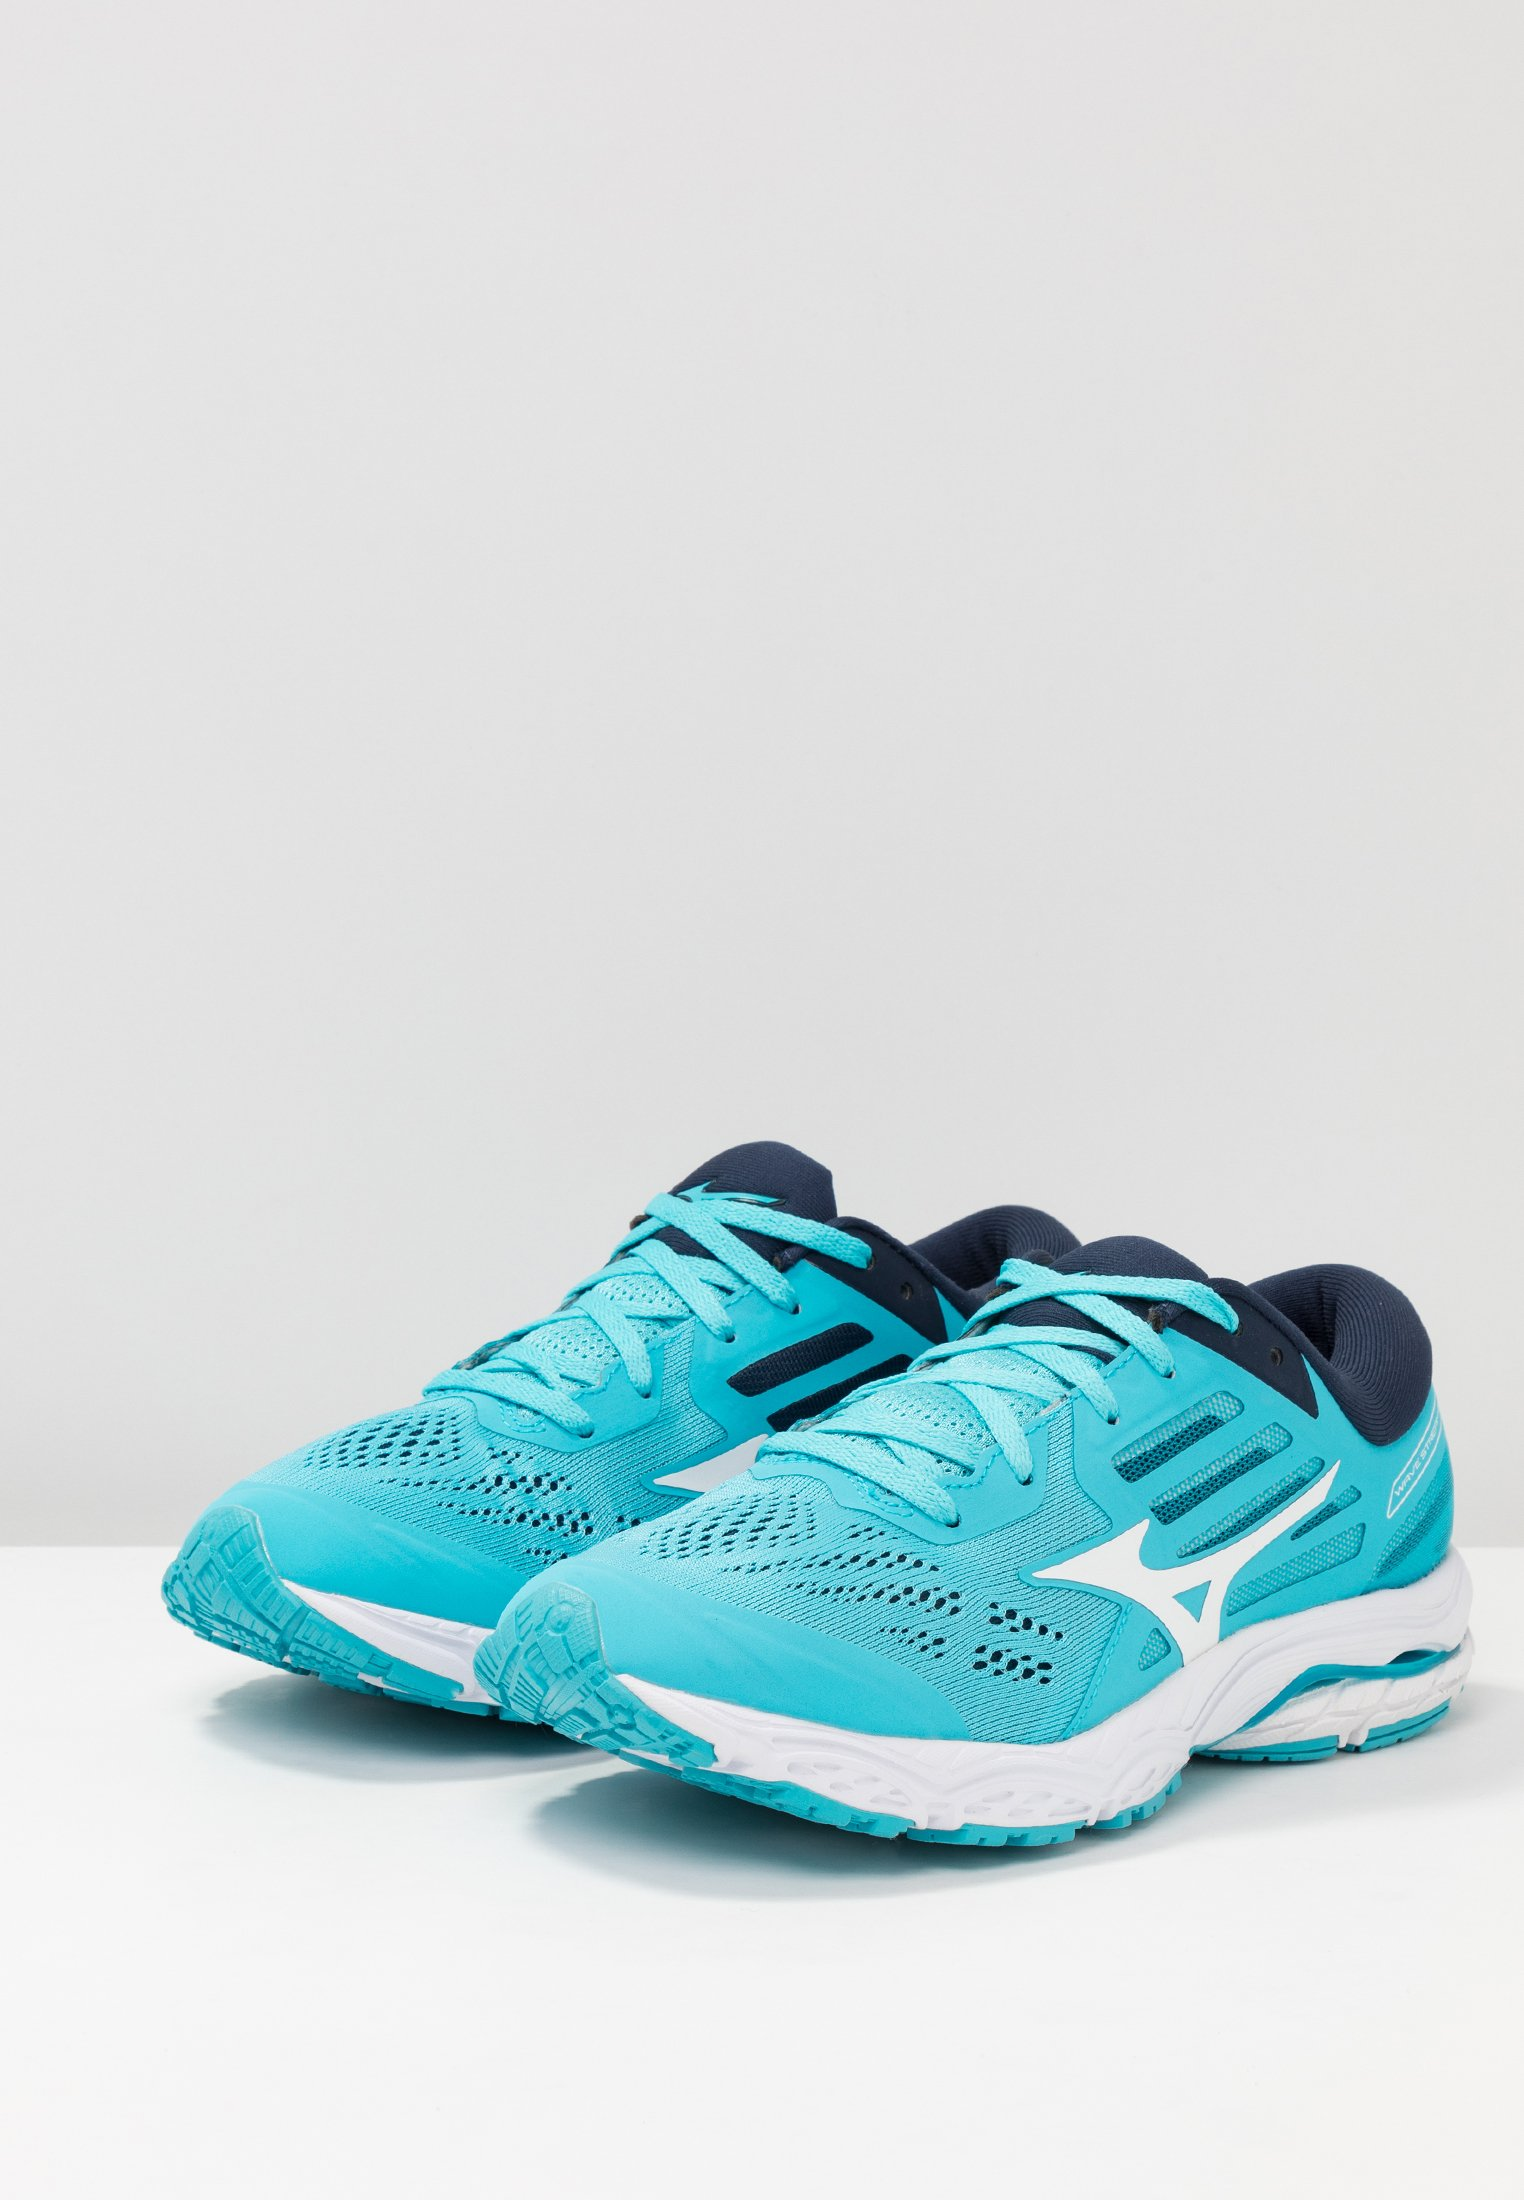 dress Atoll Neutres 2Chaussures white Wave De Blues Blue Stream Mizuno Running SzGVqUMp